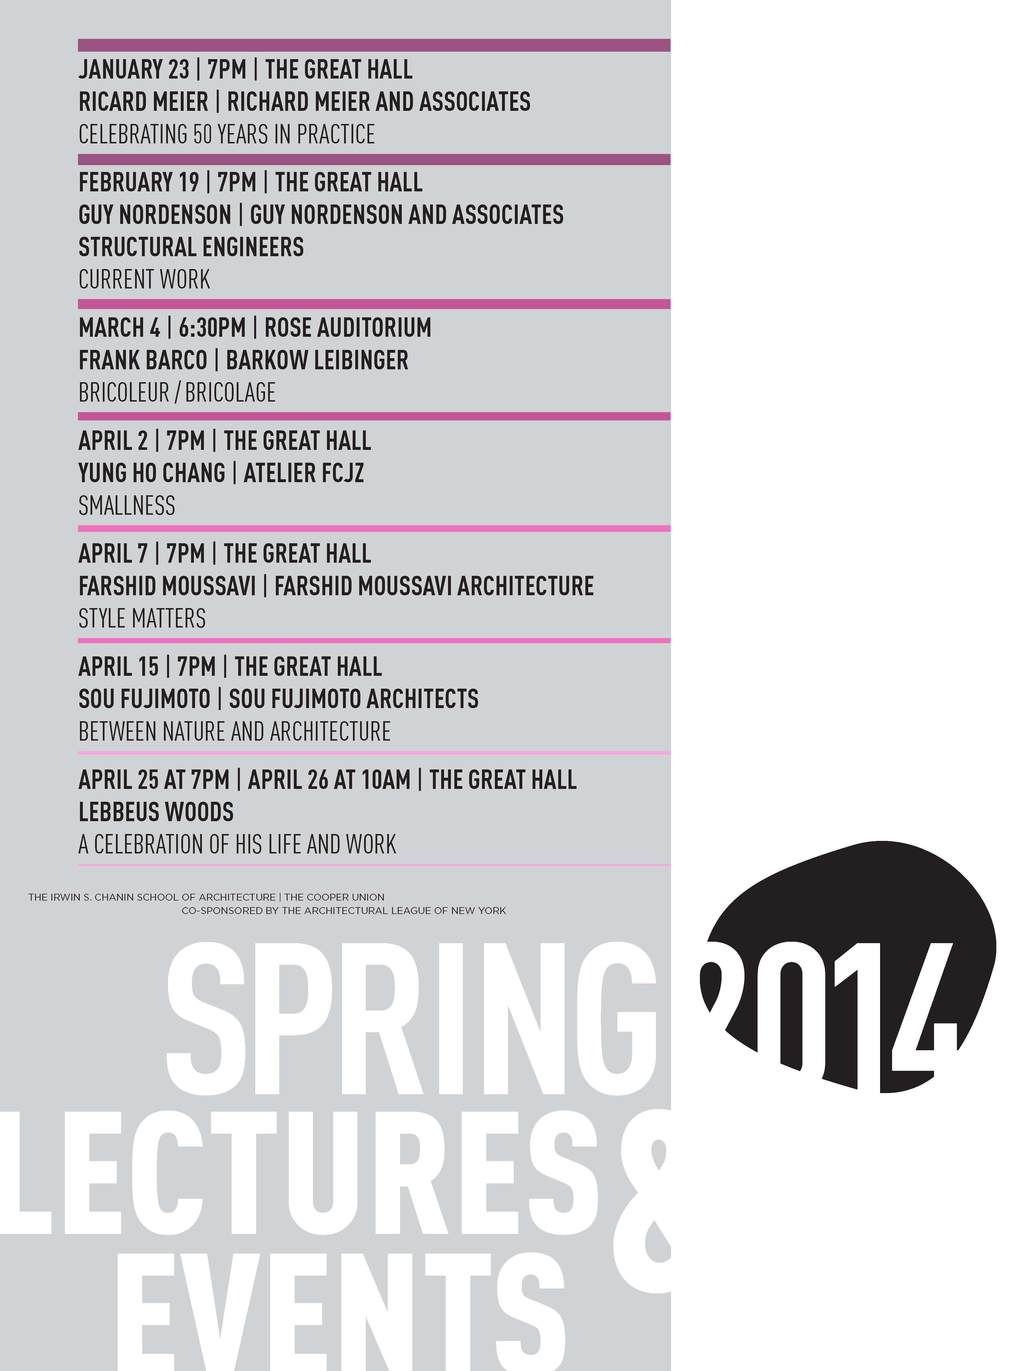 Spring '14 Lectures and Events. Image courtesy of The Irwin S. Chanin School of Architecture at Cooper Union.